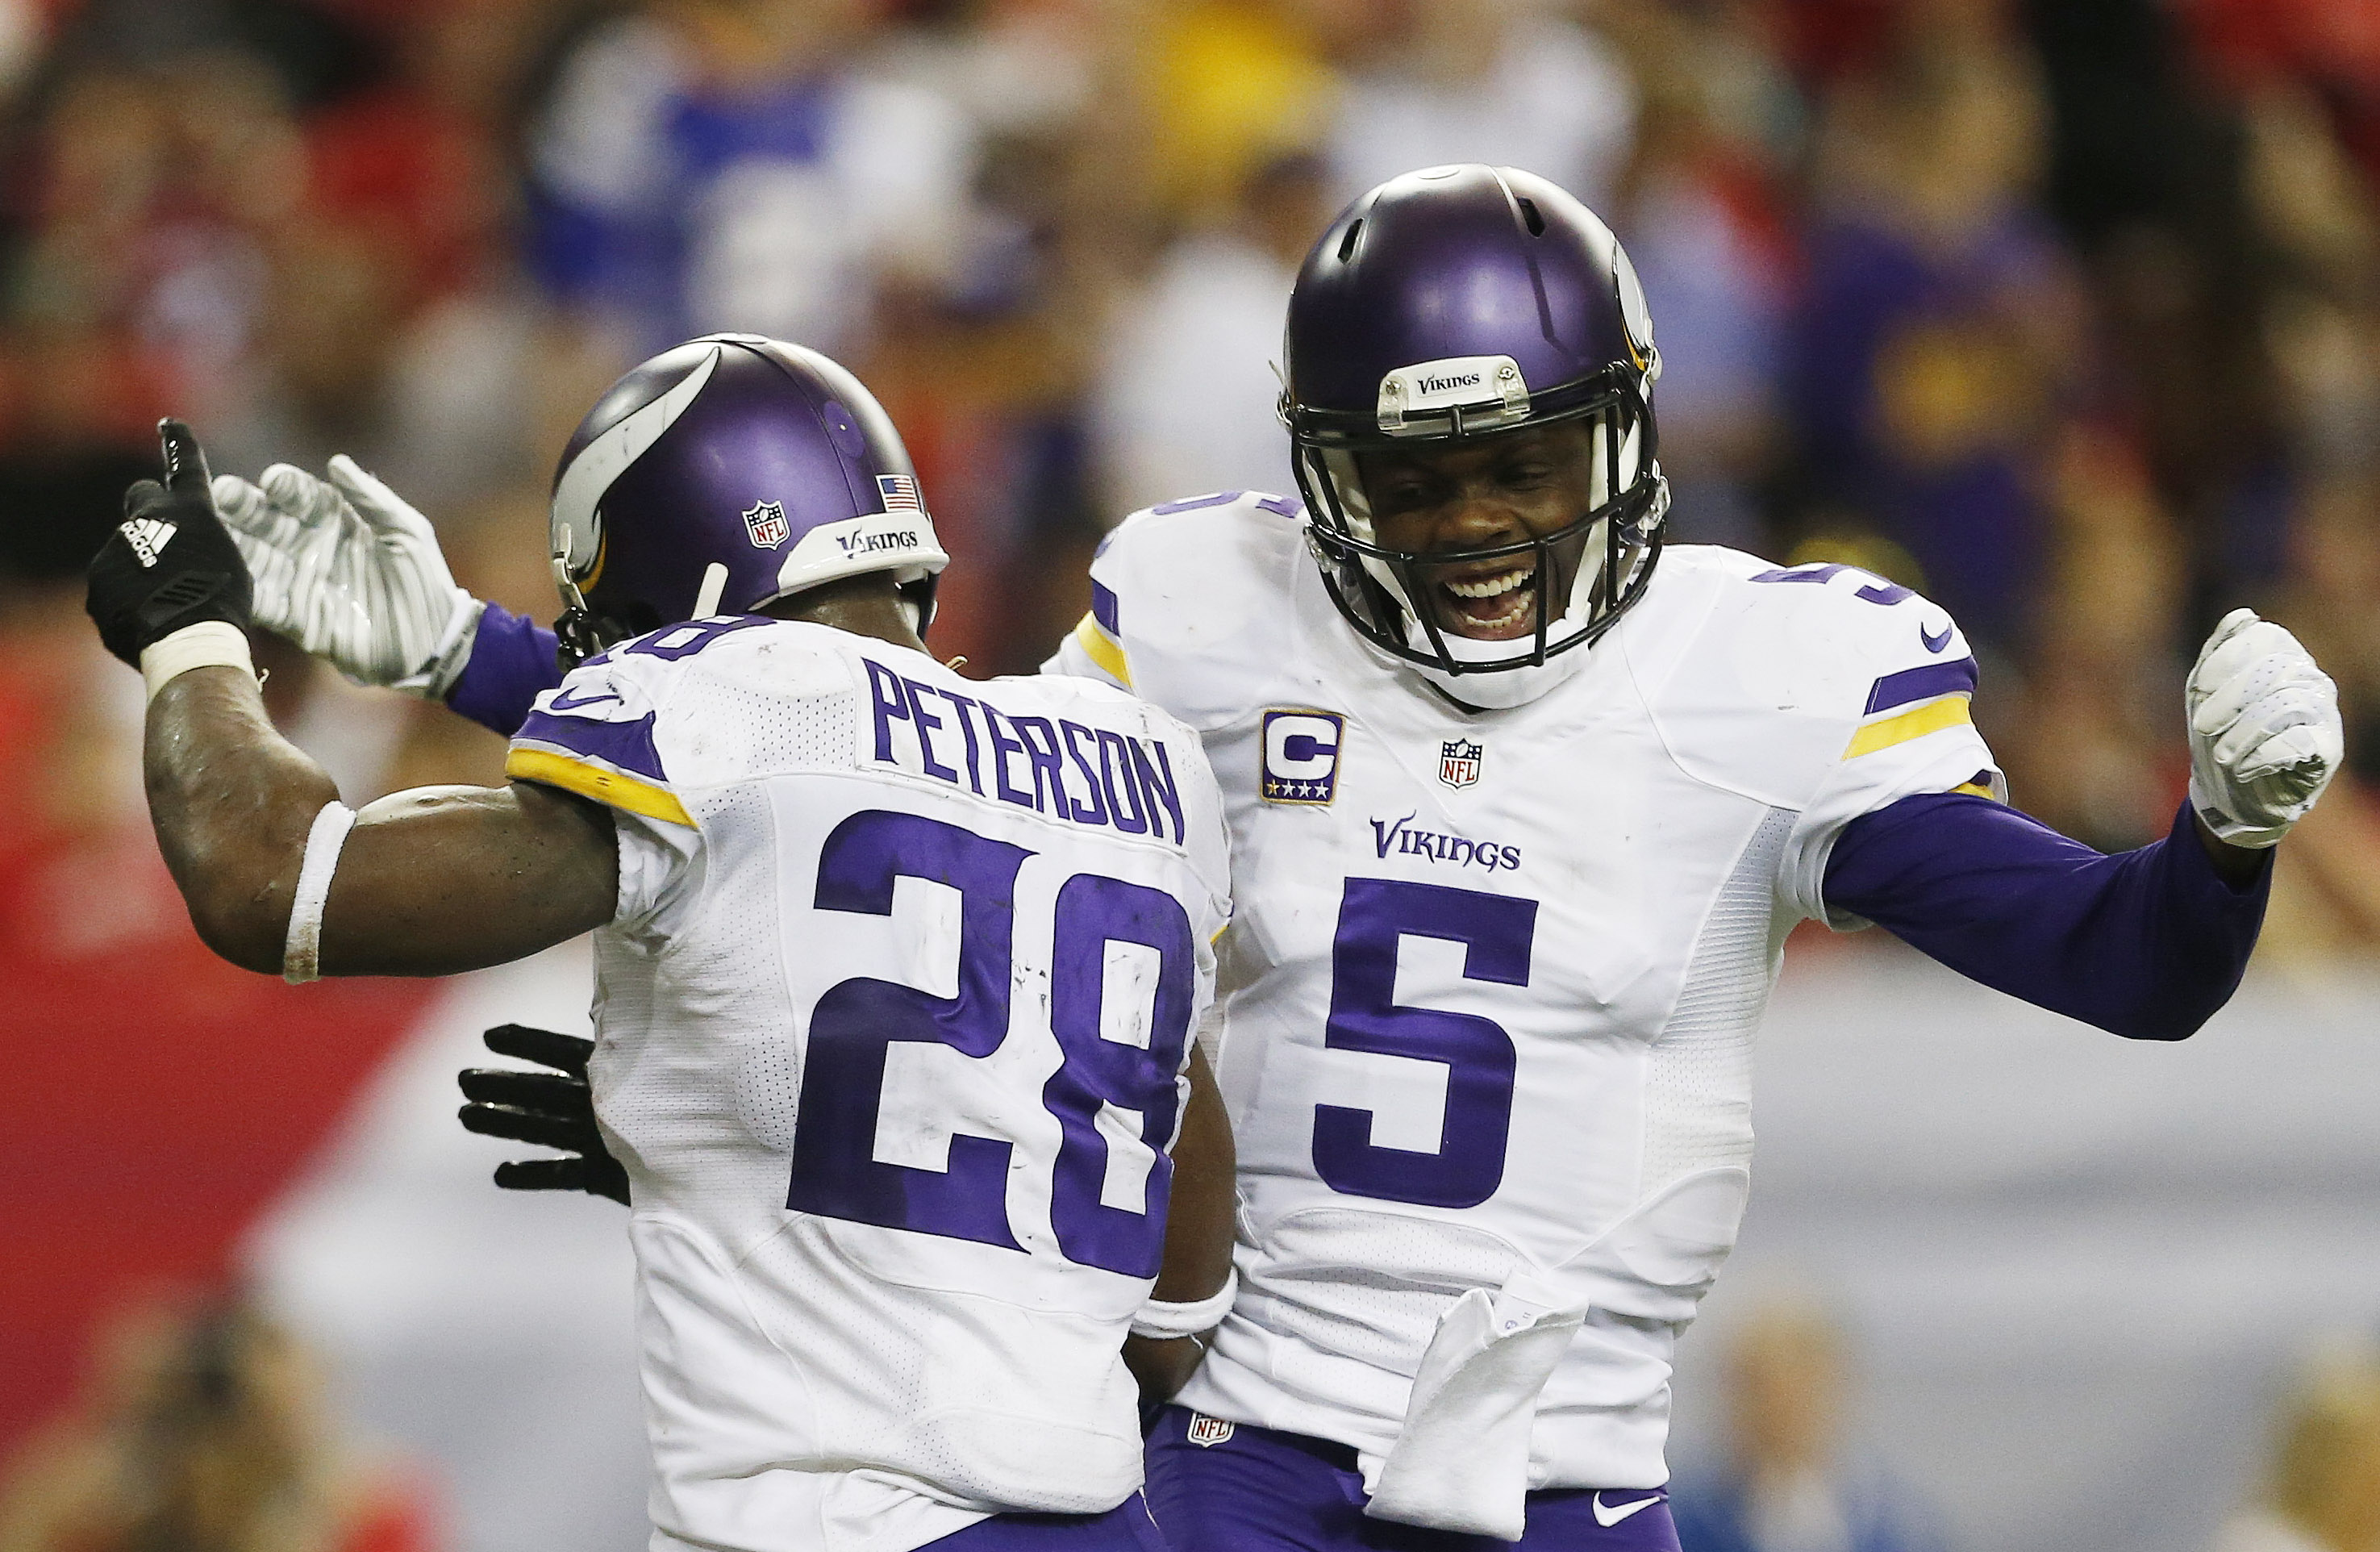 Minnesota Vikings running back Adrian Peterson (28) celebrates his touchdown with Minnesota Vikings quarterback Teddy Bridgewater (5) against the Atlanta Falcons during the second half of an NFL football game, Sunday, Nov. 29, 2015, in Atlanta. (AP Photo/